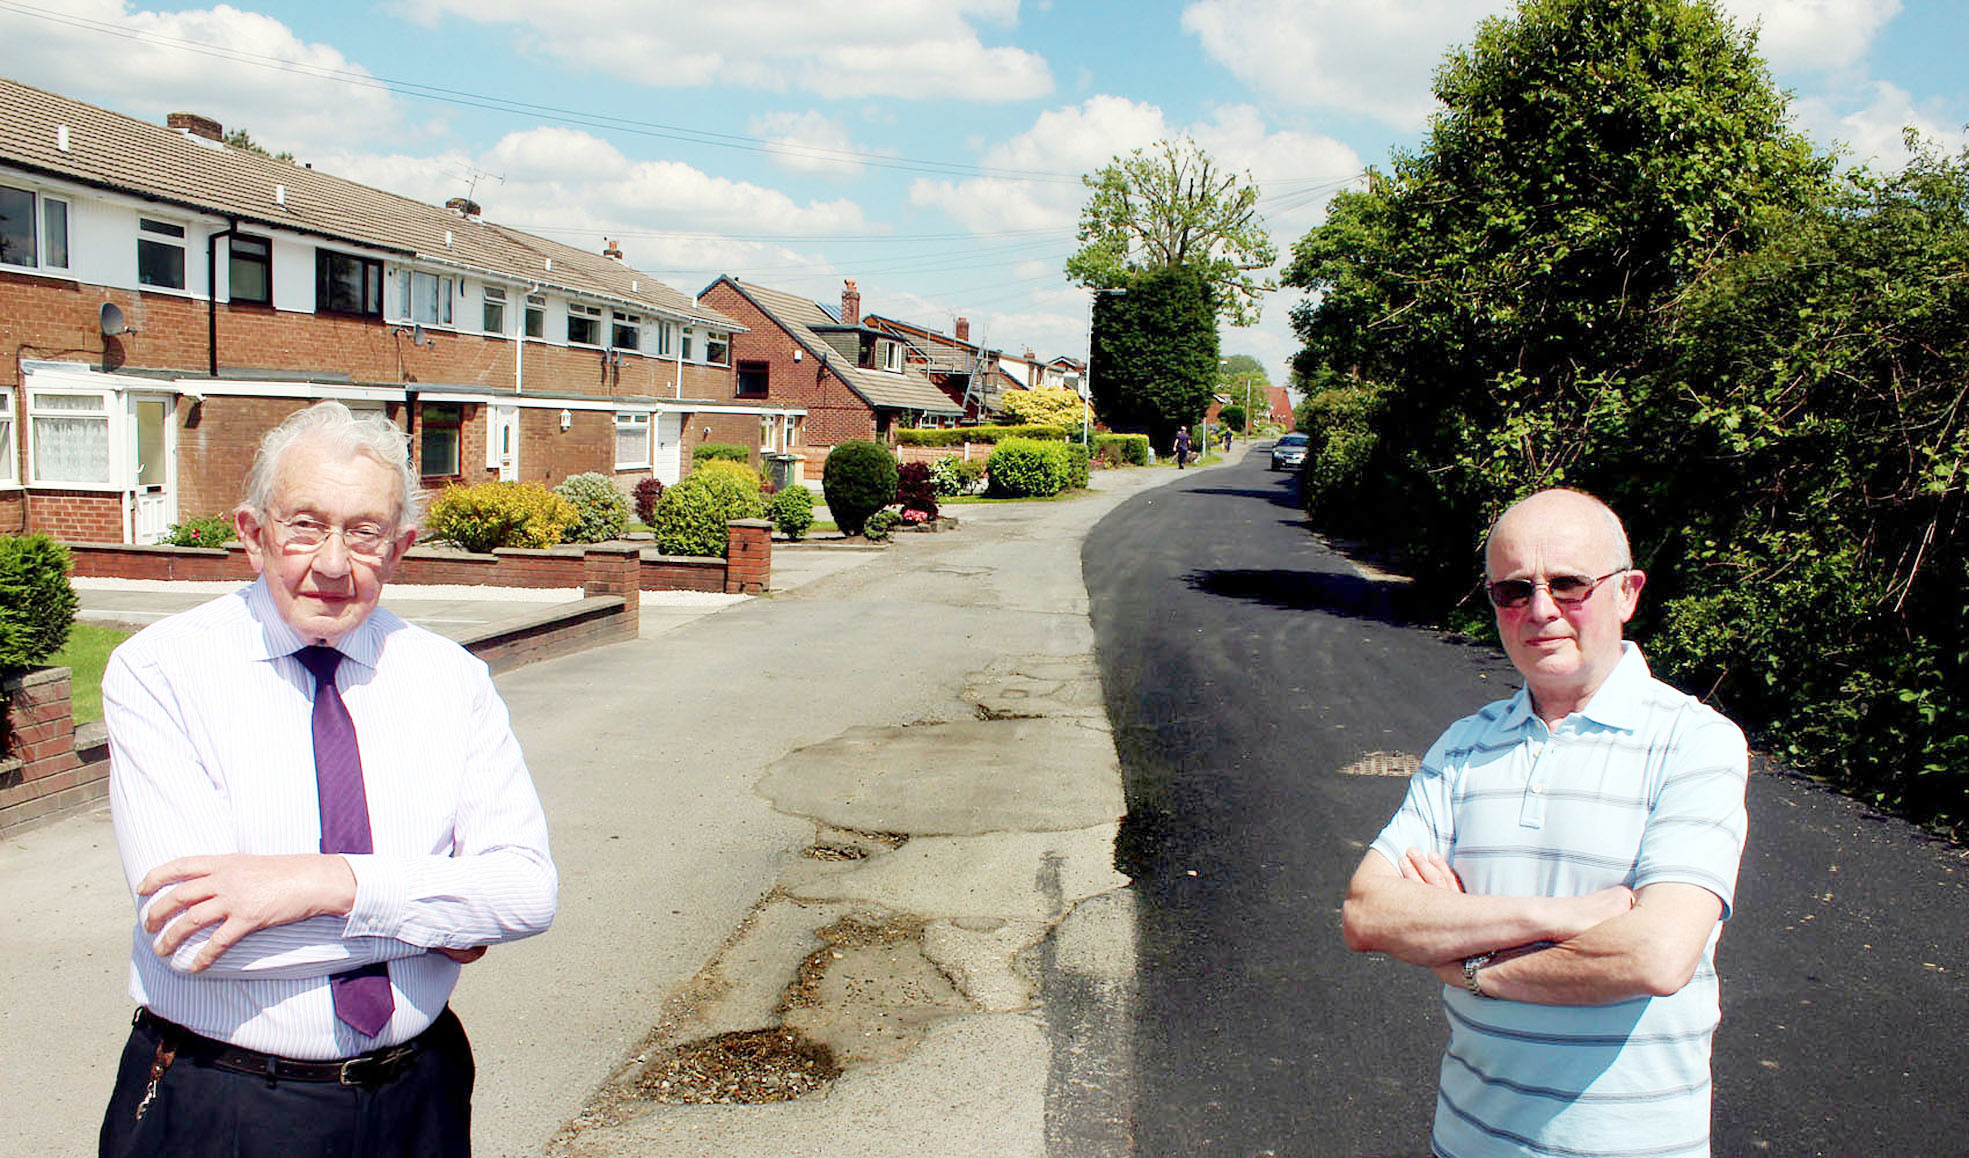 Residents baffled as workmen resurface only half of road